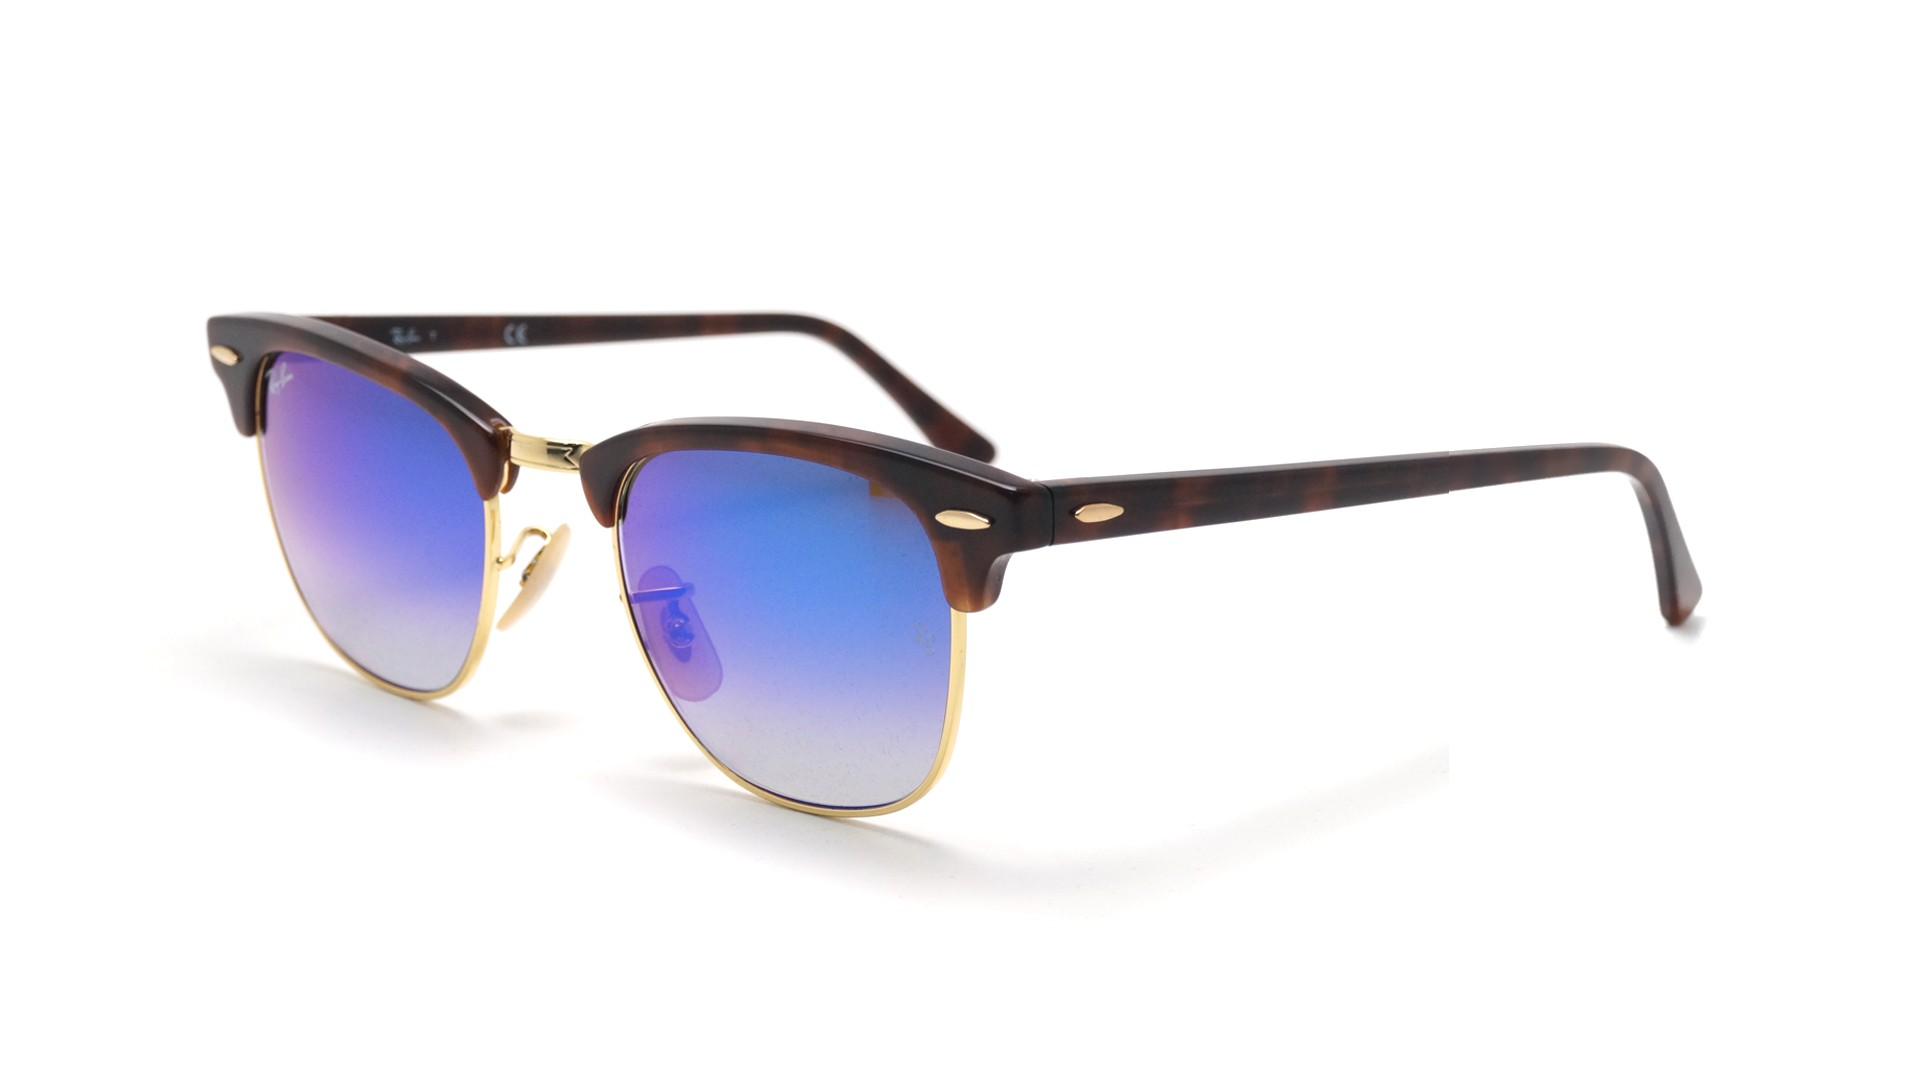 Sunglasses Ray-Ban Clubmaster Tortoise Flash lenses RB3016 990 7Q 49-21  Small Degraded Flash ad4bec4ca792